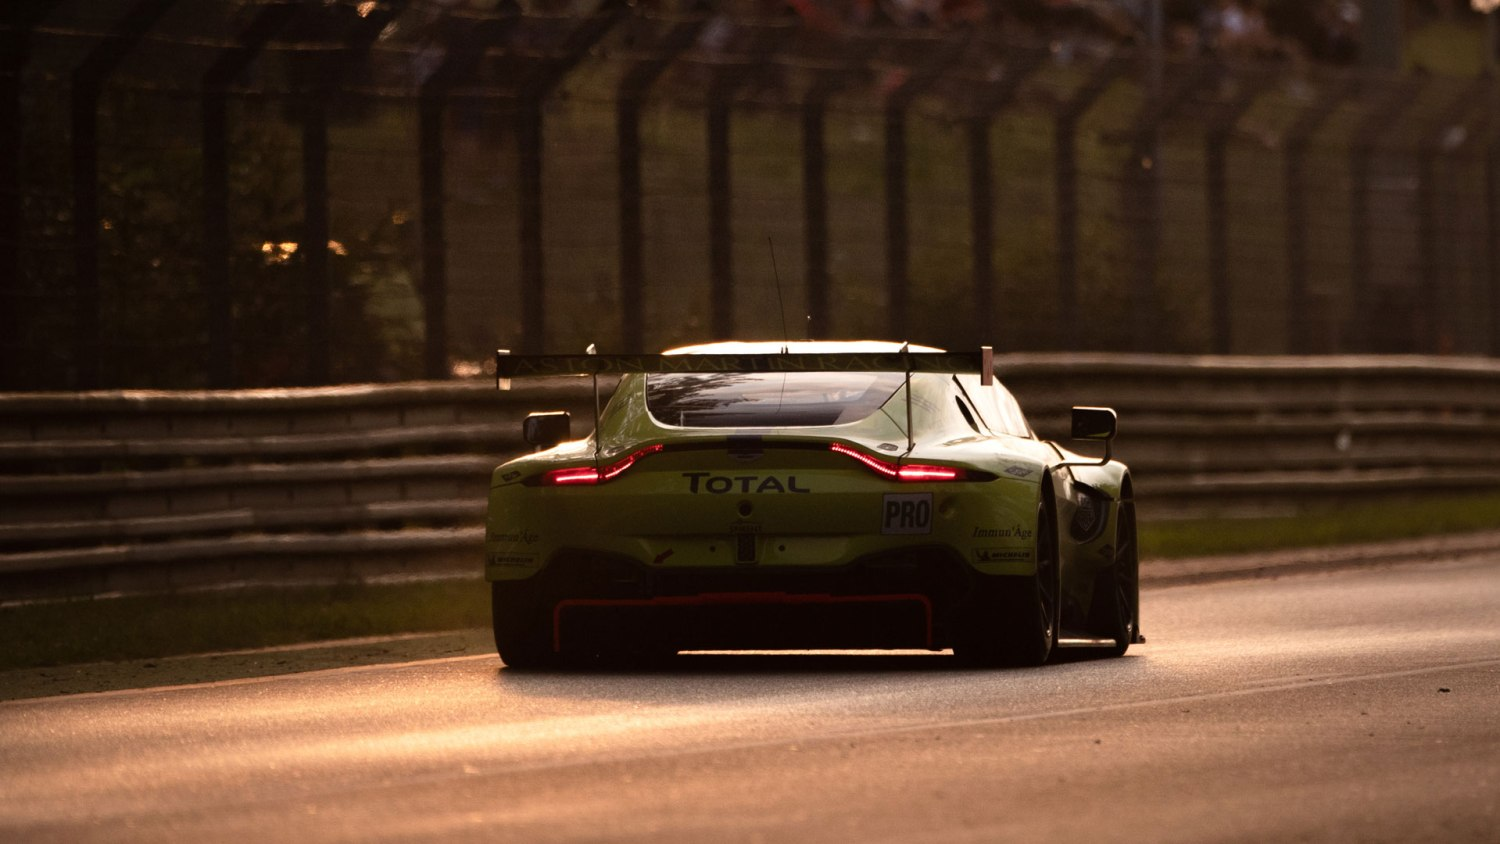 Le Mans 24 Hours – 15-16 June